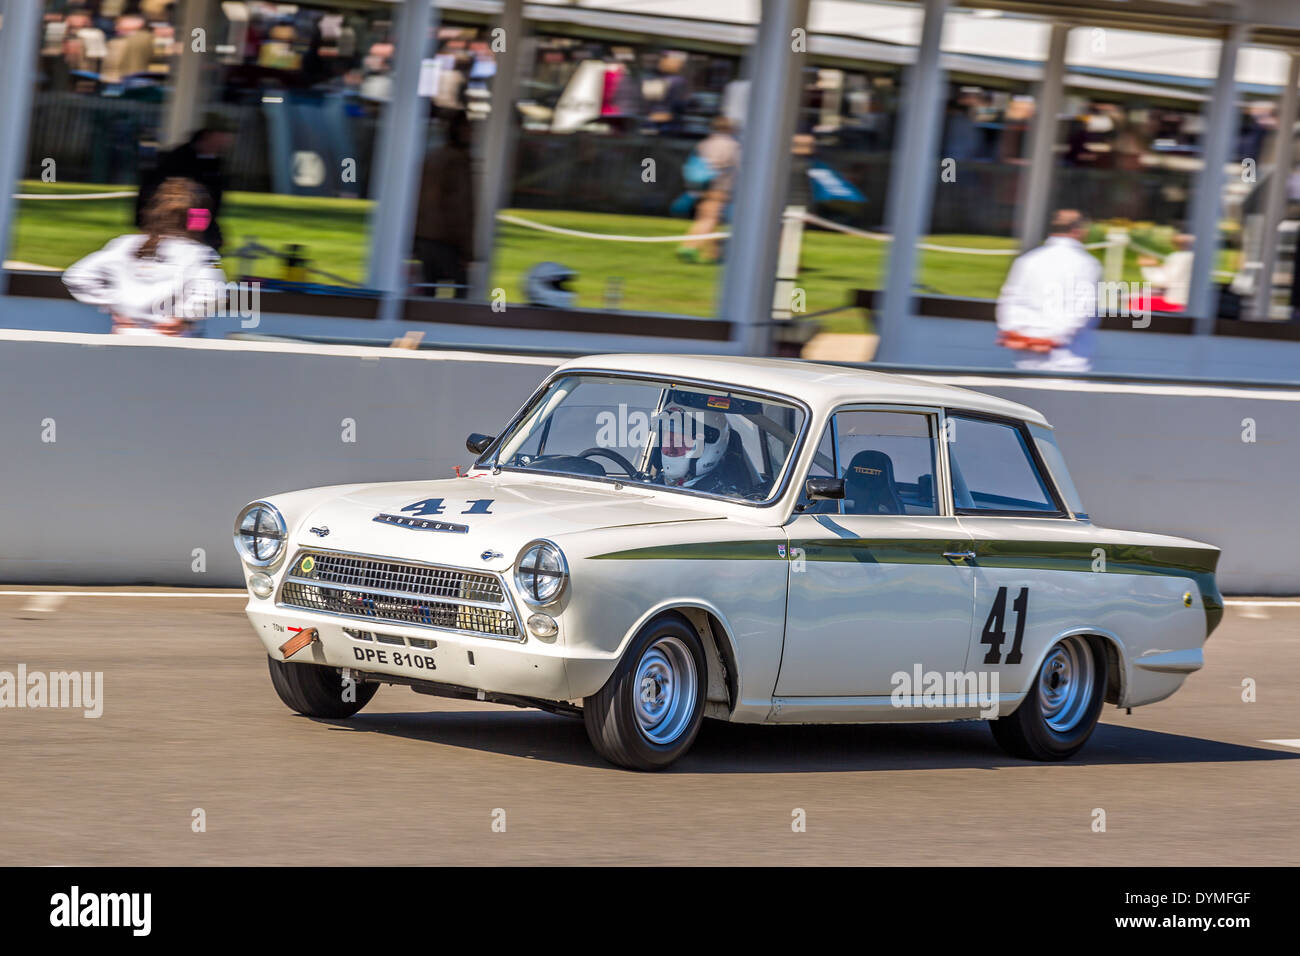 1964 ford lotus cortina mk1 with driver neil brown sears trophy race 72nd